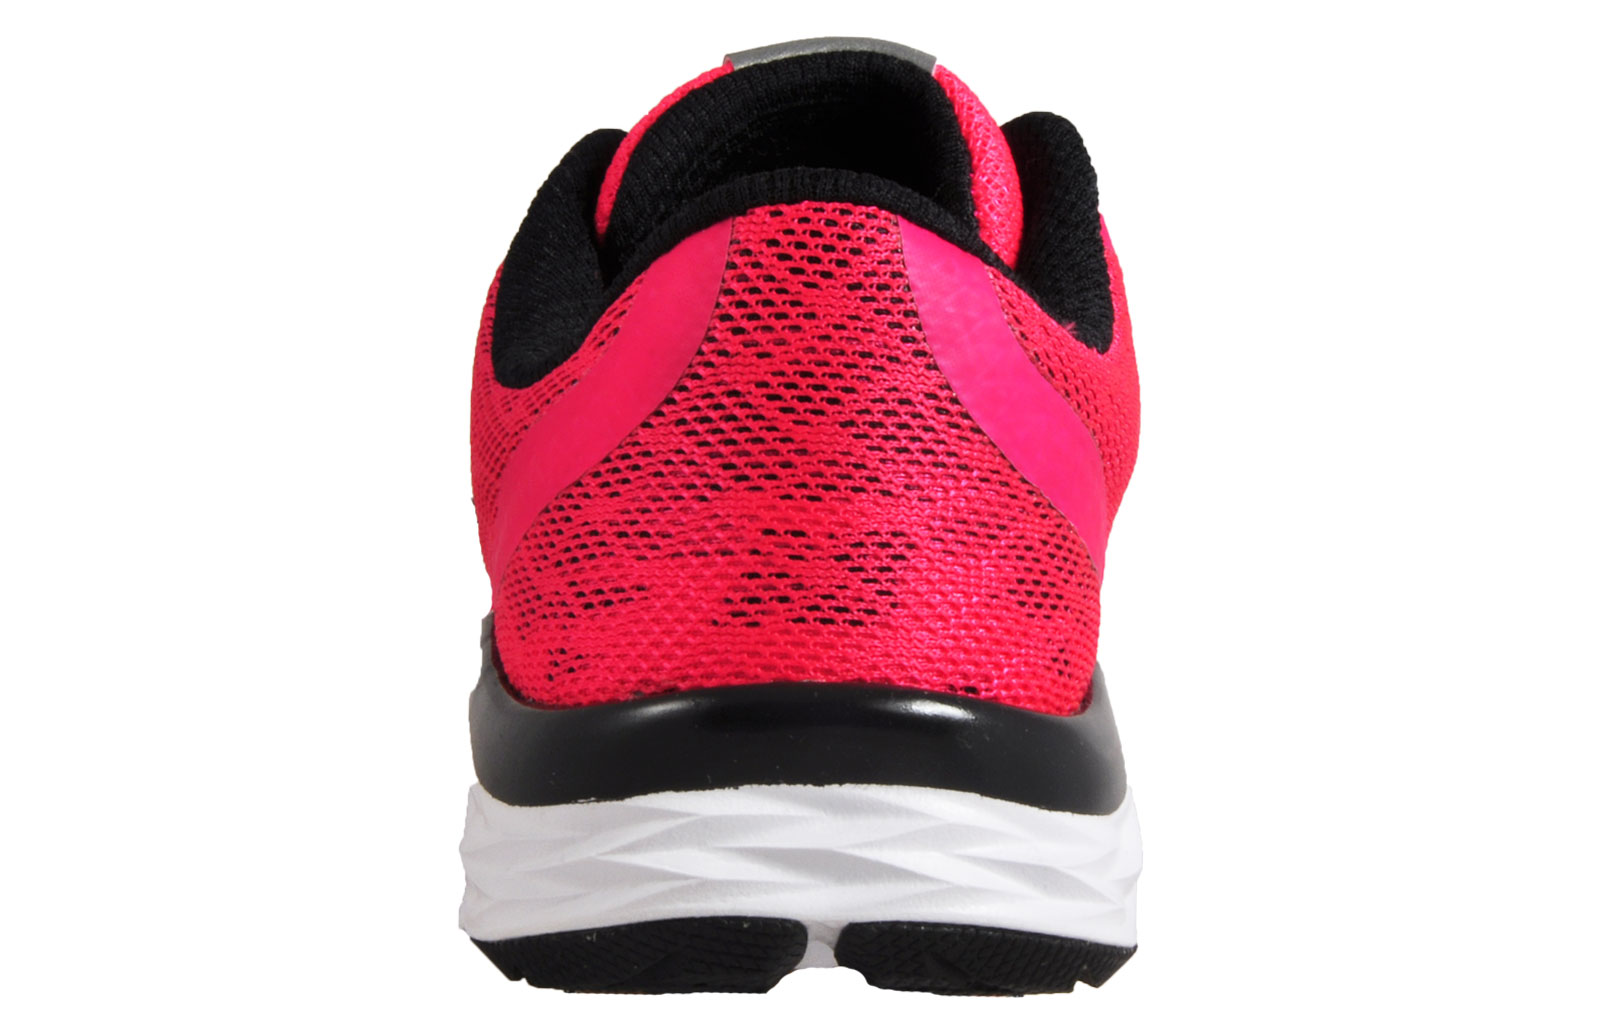 info for 90c47 16c7c New Balance 790 V6 Women s Premium Running Shoes Gym Fitness Trainers Pink